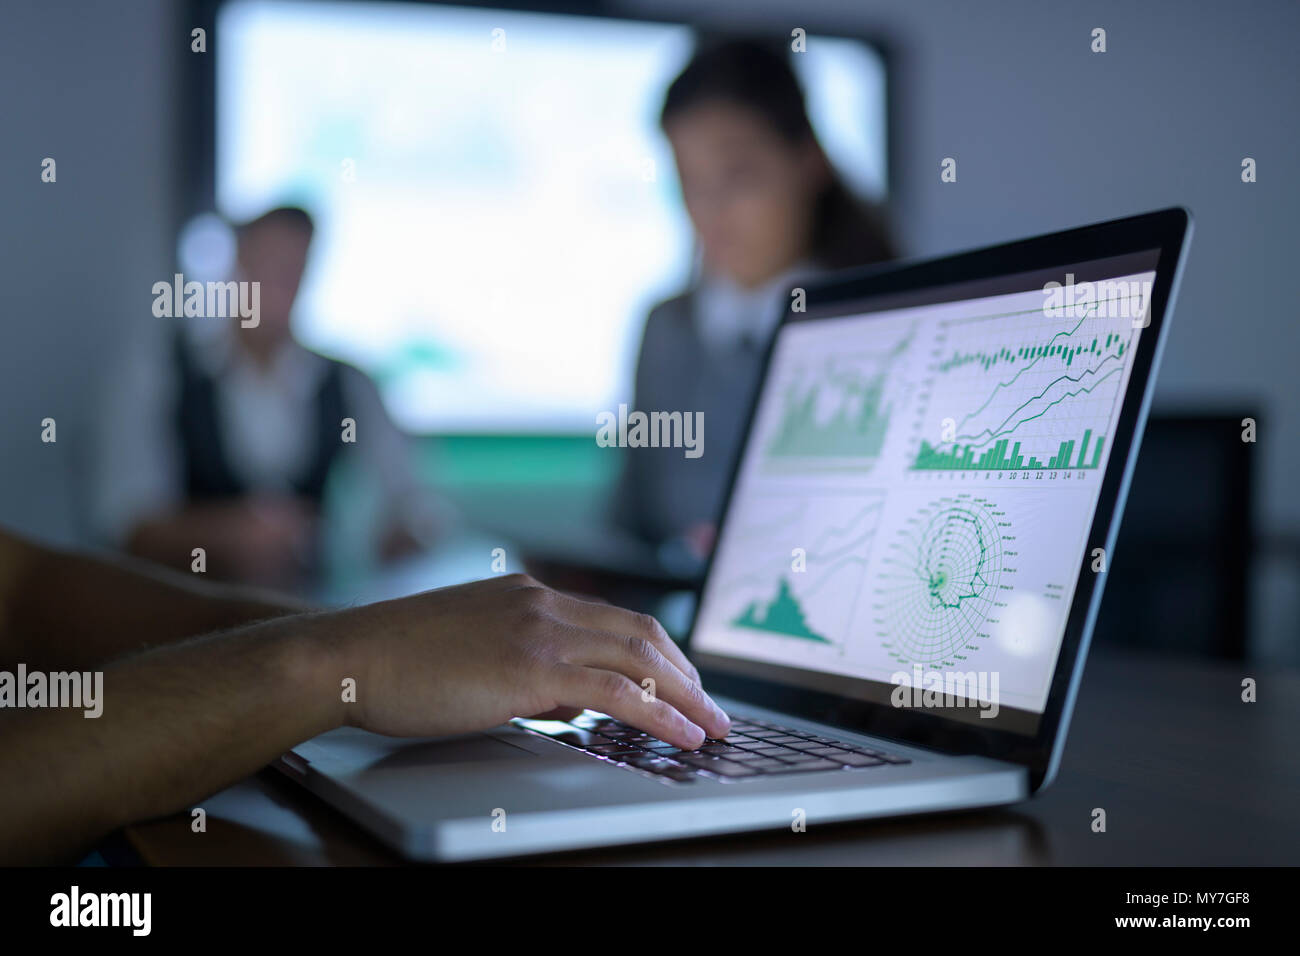 Businessman viewing charts and graphs on laptop in business meeting, close up - Stock Image